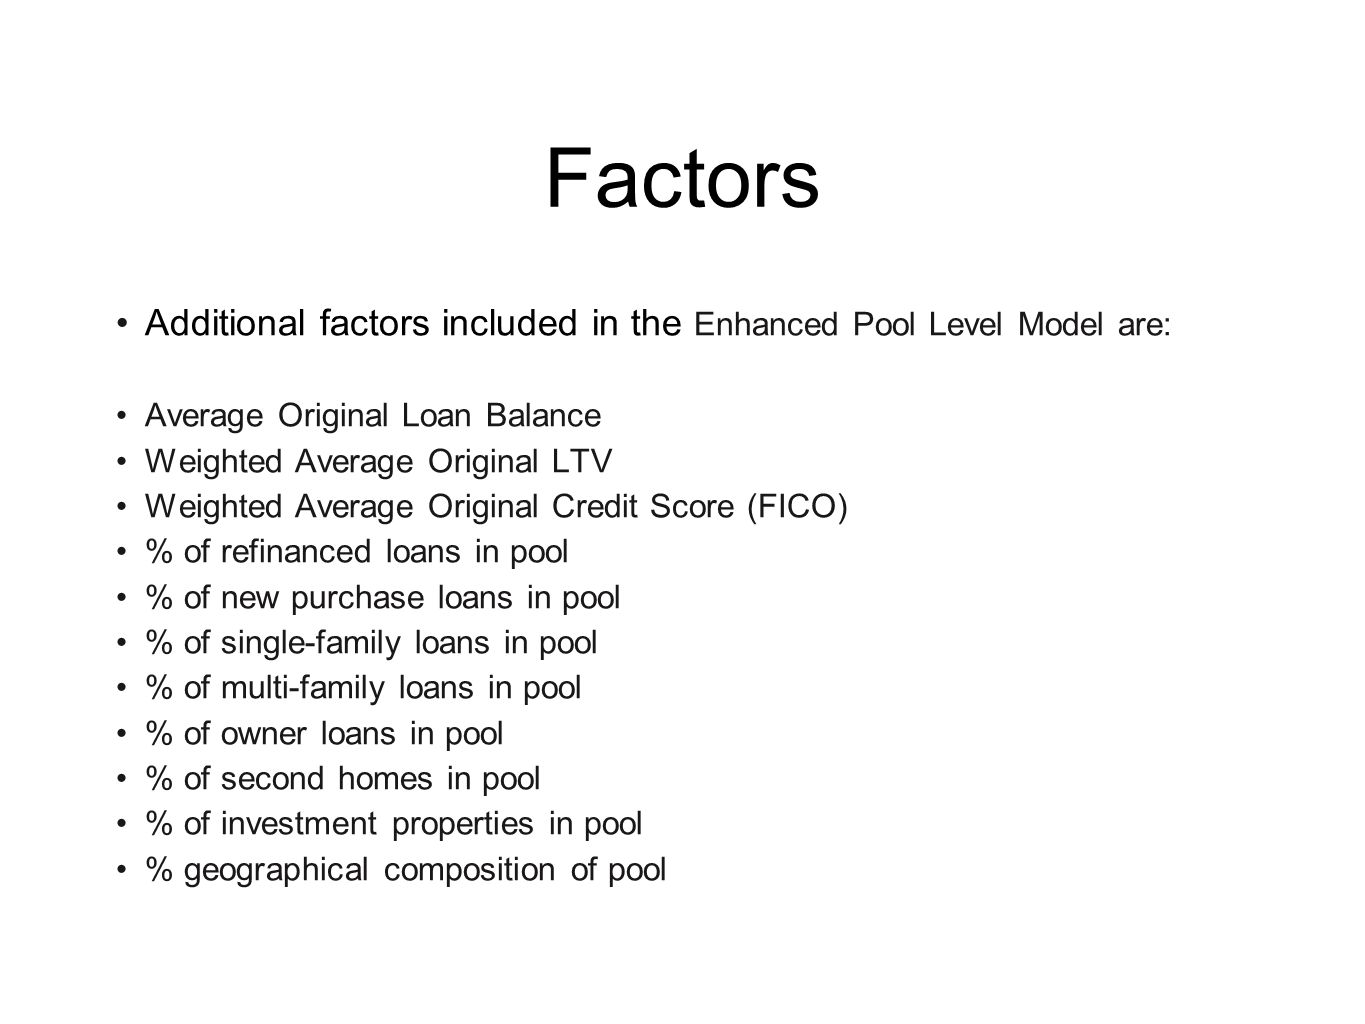 Factors Additional factors included in the Enhanced Pool Level Model are: Average Original Loan Balance Weighted Average Original LTV Weighted Average Original Credit Score (FICO) % of refinanced loans in pool % of new purchase loans in pool % of single-family loans in pool % of multi-family loans in pool % of owner loans in pool % of second homes in pool % of investment properties in pool % geographical composition of pool